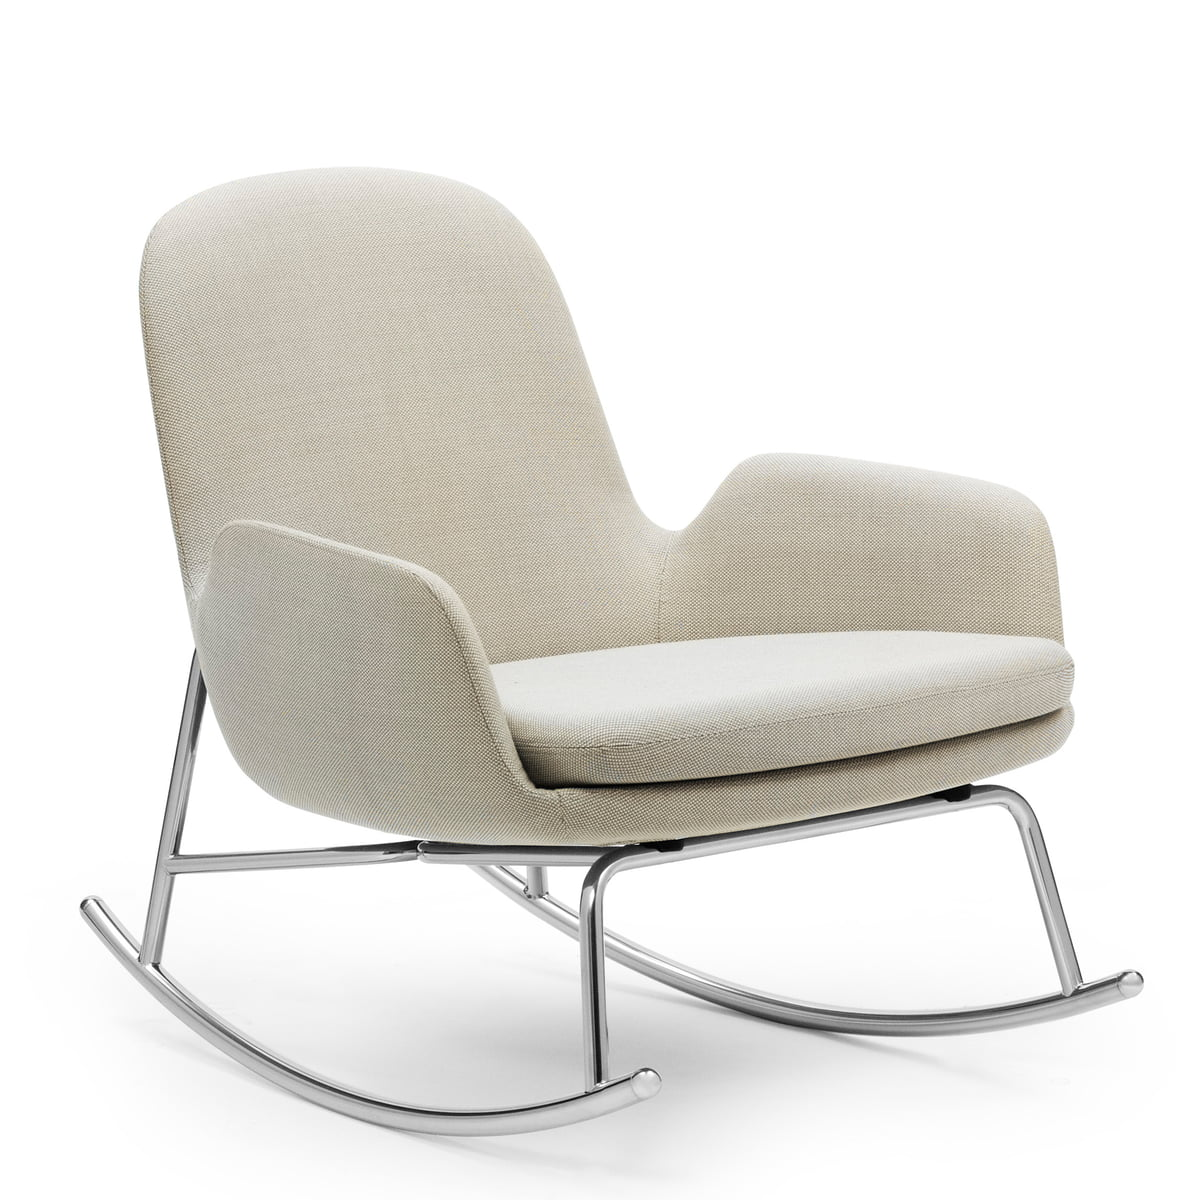 Fauteuil era rocking chair low de normann copenhagen for Rocking chair schaukelstuhl